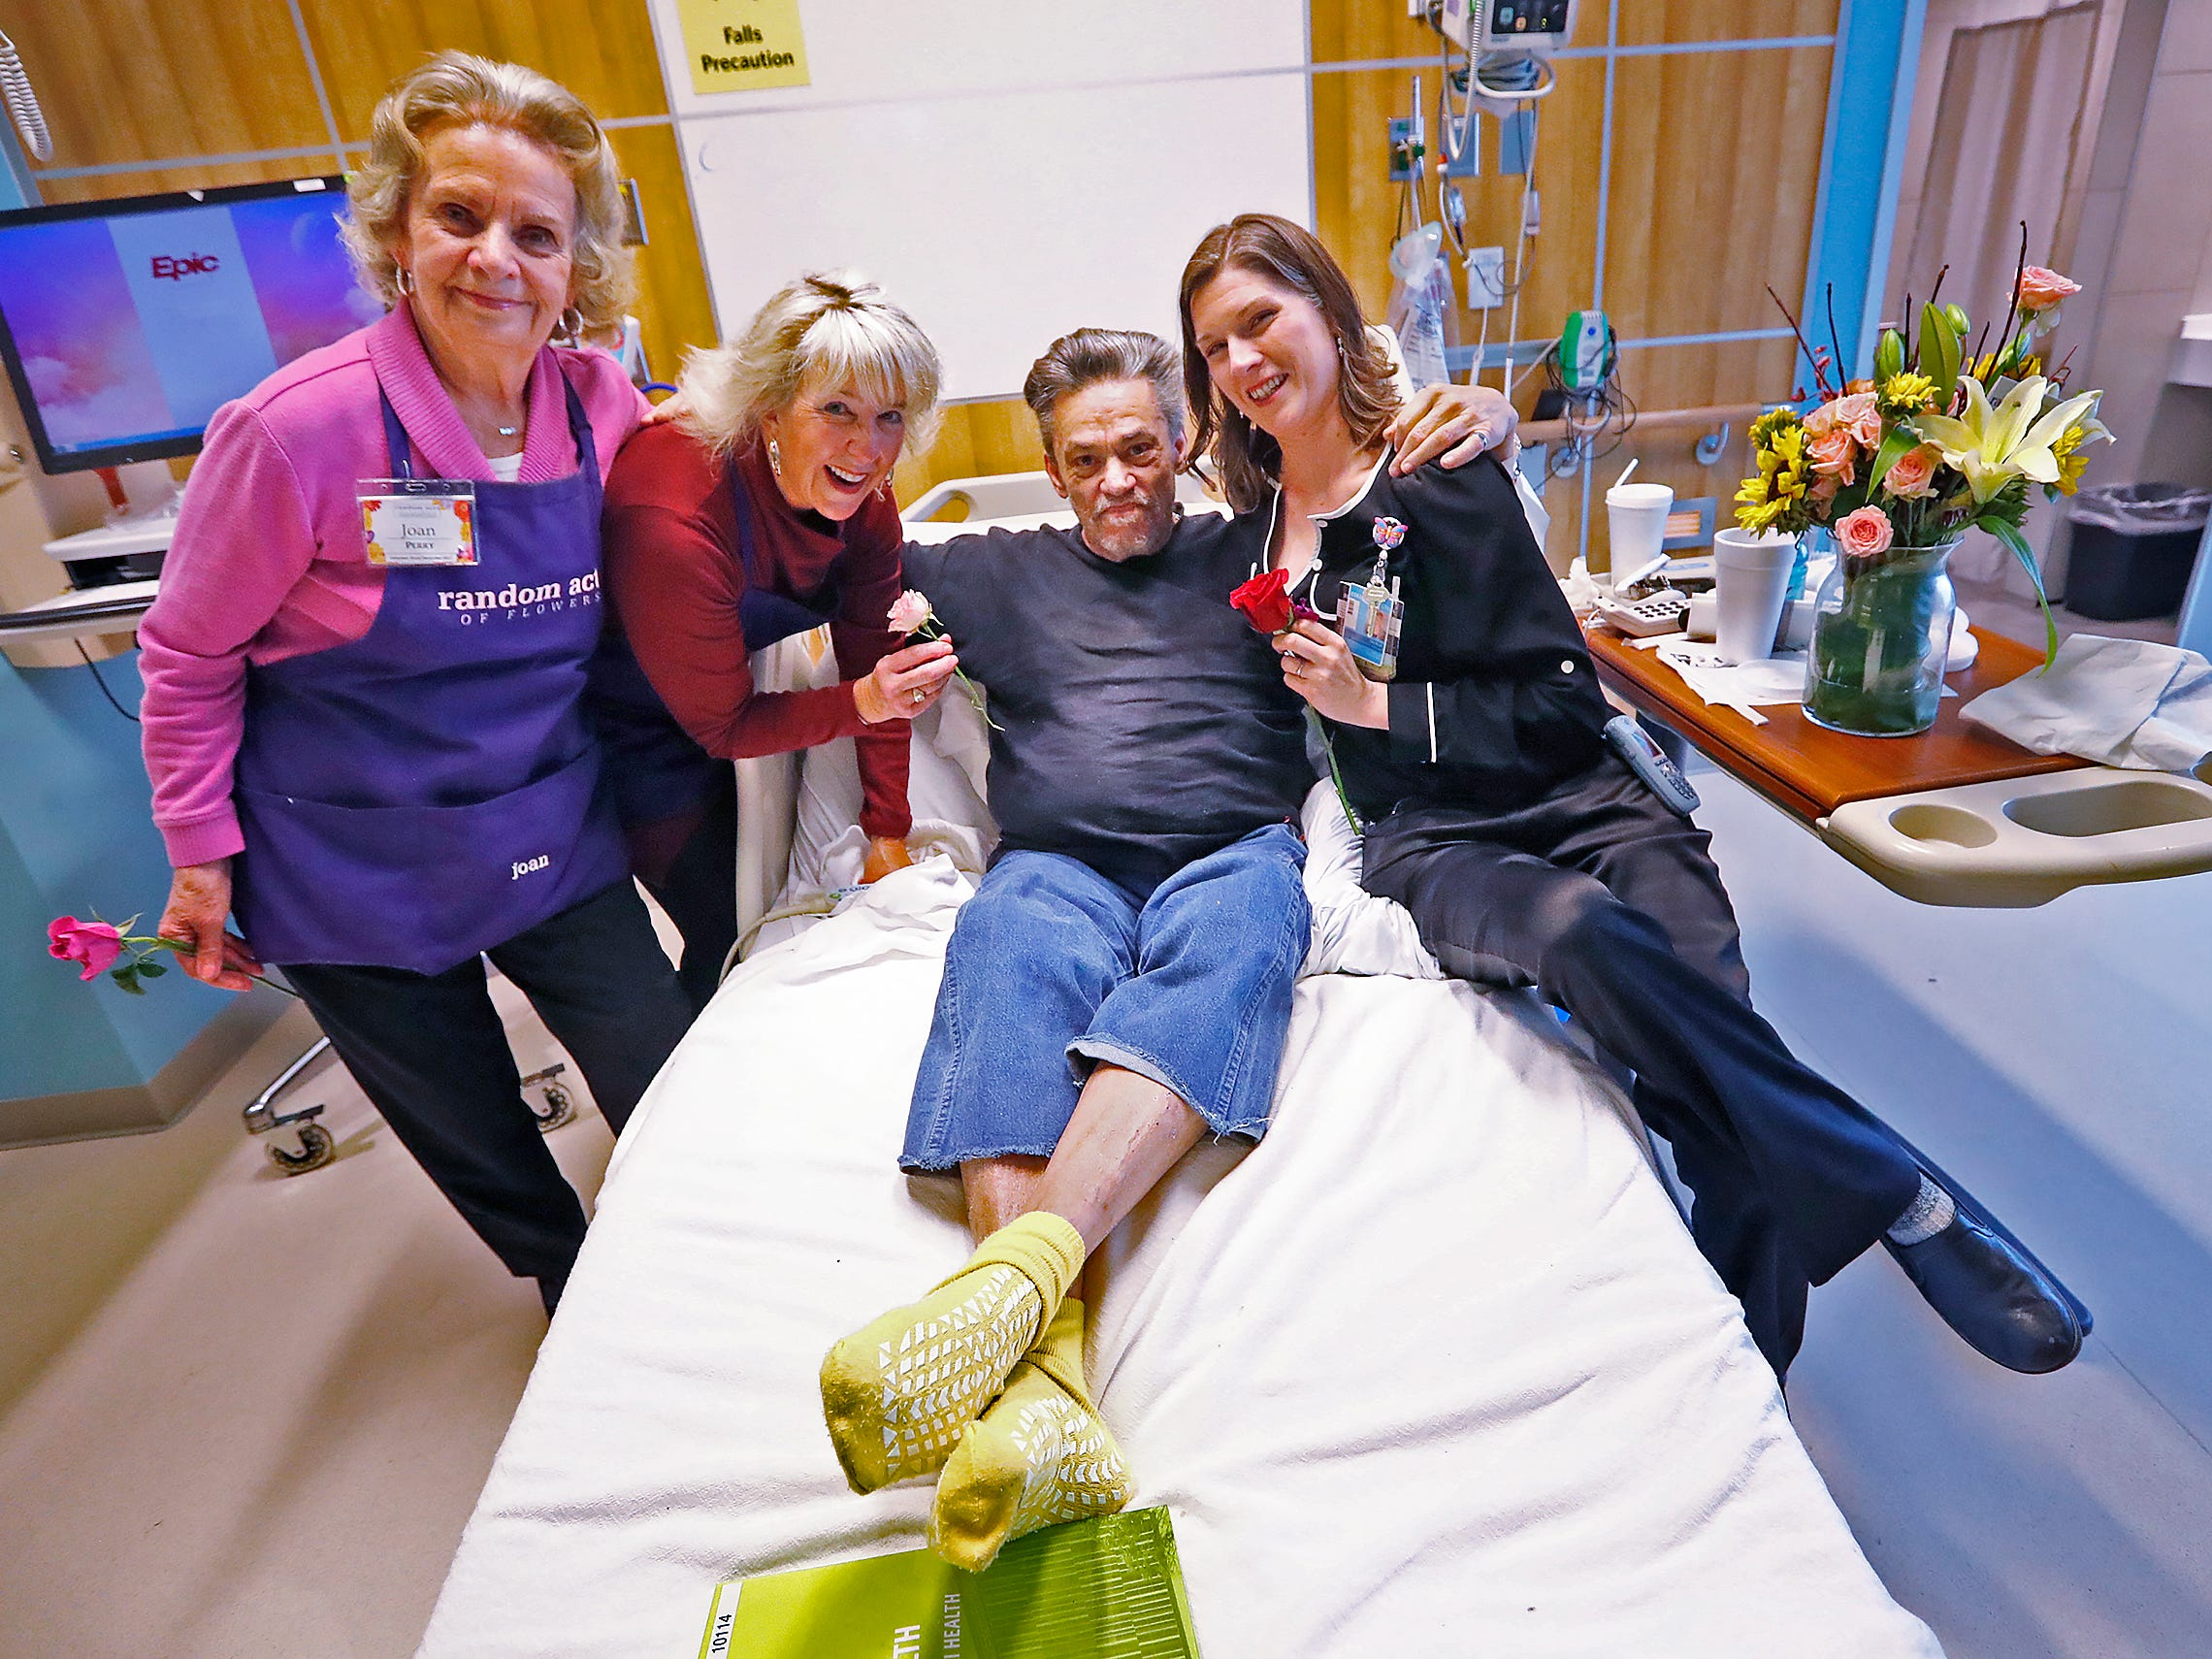 Joan Perry, from left, and Claire Alexander, with Random Acts of Flowers, and Natalie George Dykstra, right, with Eskenazi's Office of Patient Experience, pose with patient Robert Eastes, at Sidney & Lois Eskenazi Hospital, Thursday, Nov. 29, 2018, after delivering a bouquet of flowers to him.  The newest branch of the national floral nonprofit has been delivering the flowers to patients to offer hope, encouragement and smiles, for about two years.  Eastes also shared a flower with each of the women, and a woman photographer.